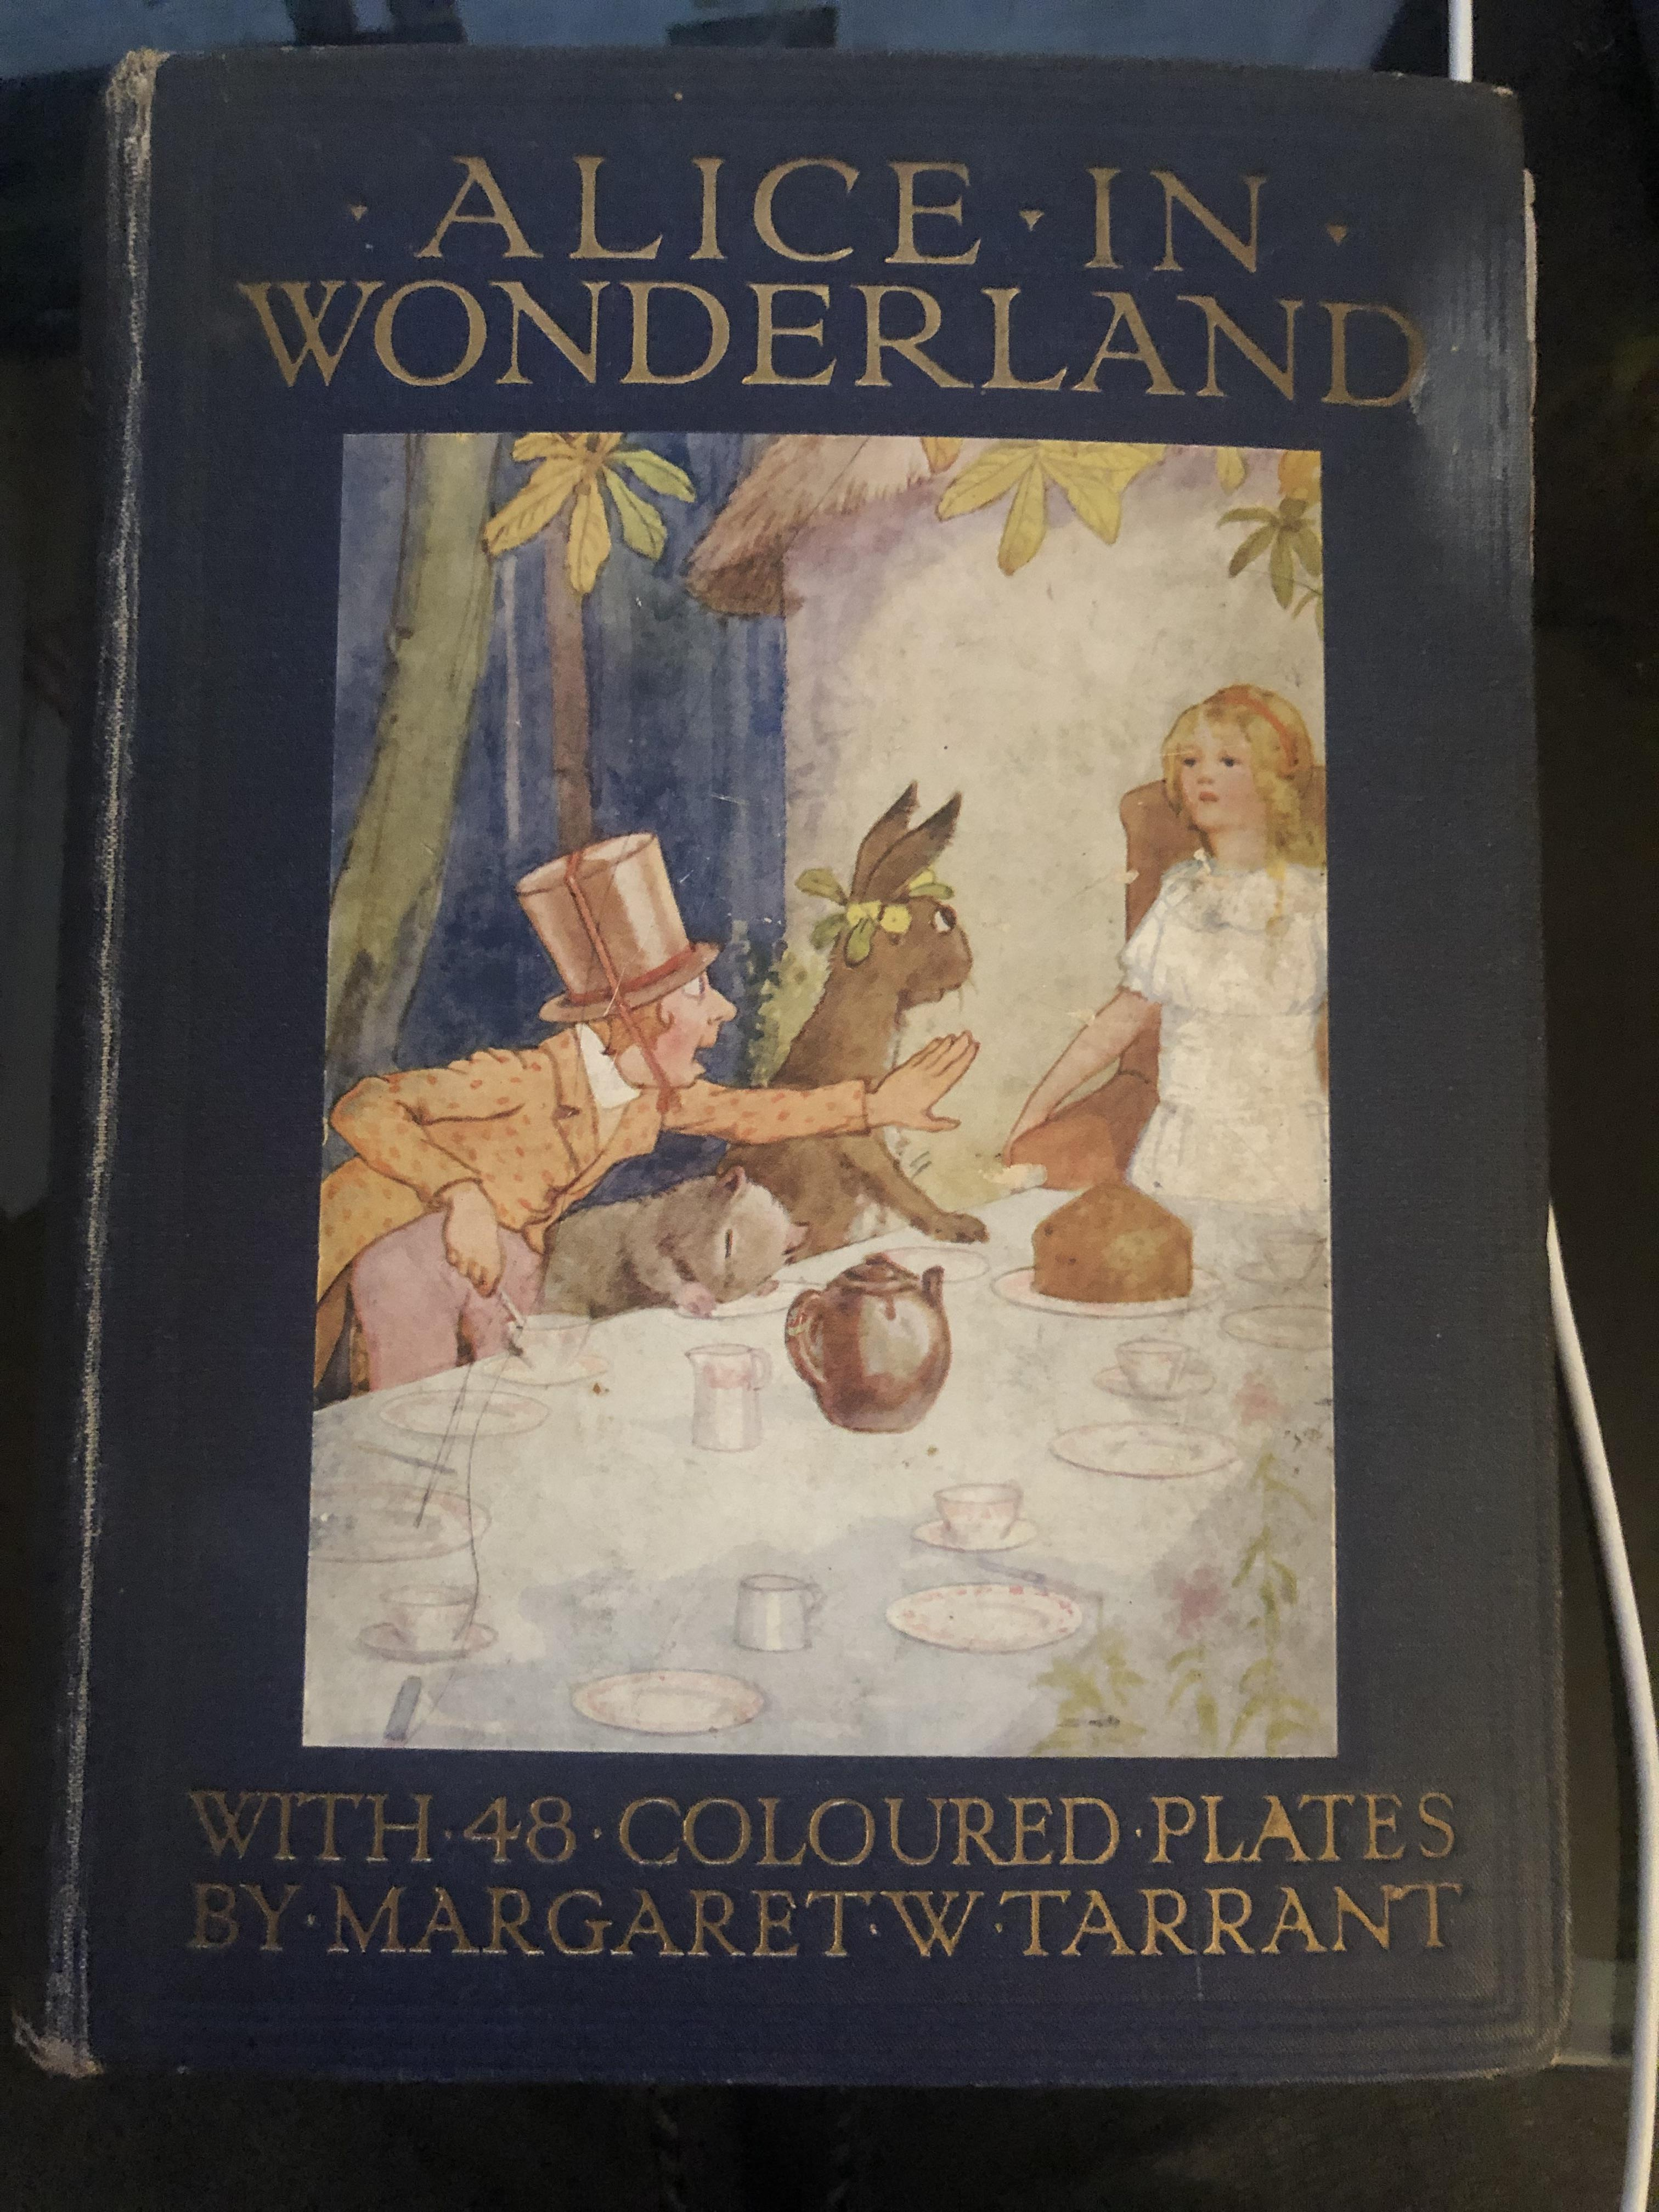 Lot 54 - Alice in Wonderland with 48 coloured plates by Margaret W Tarrant